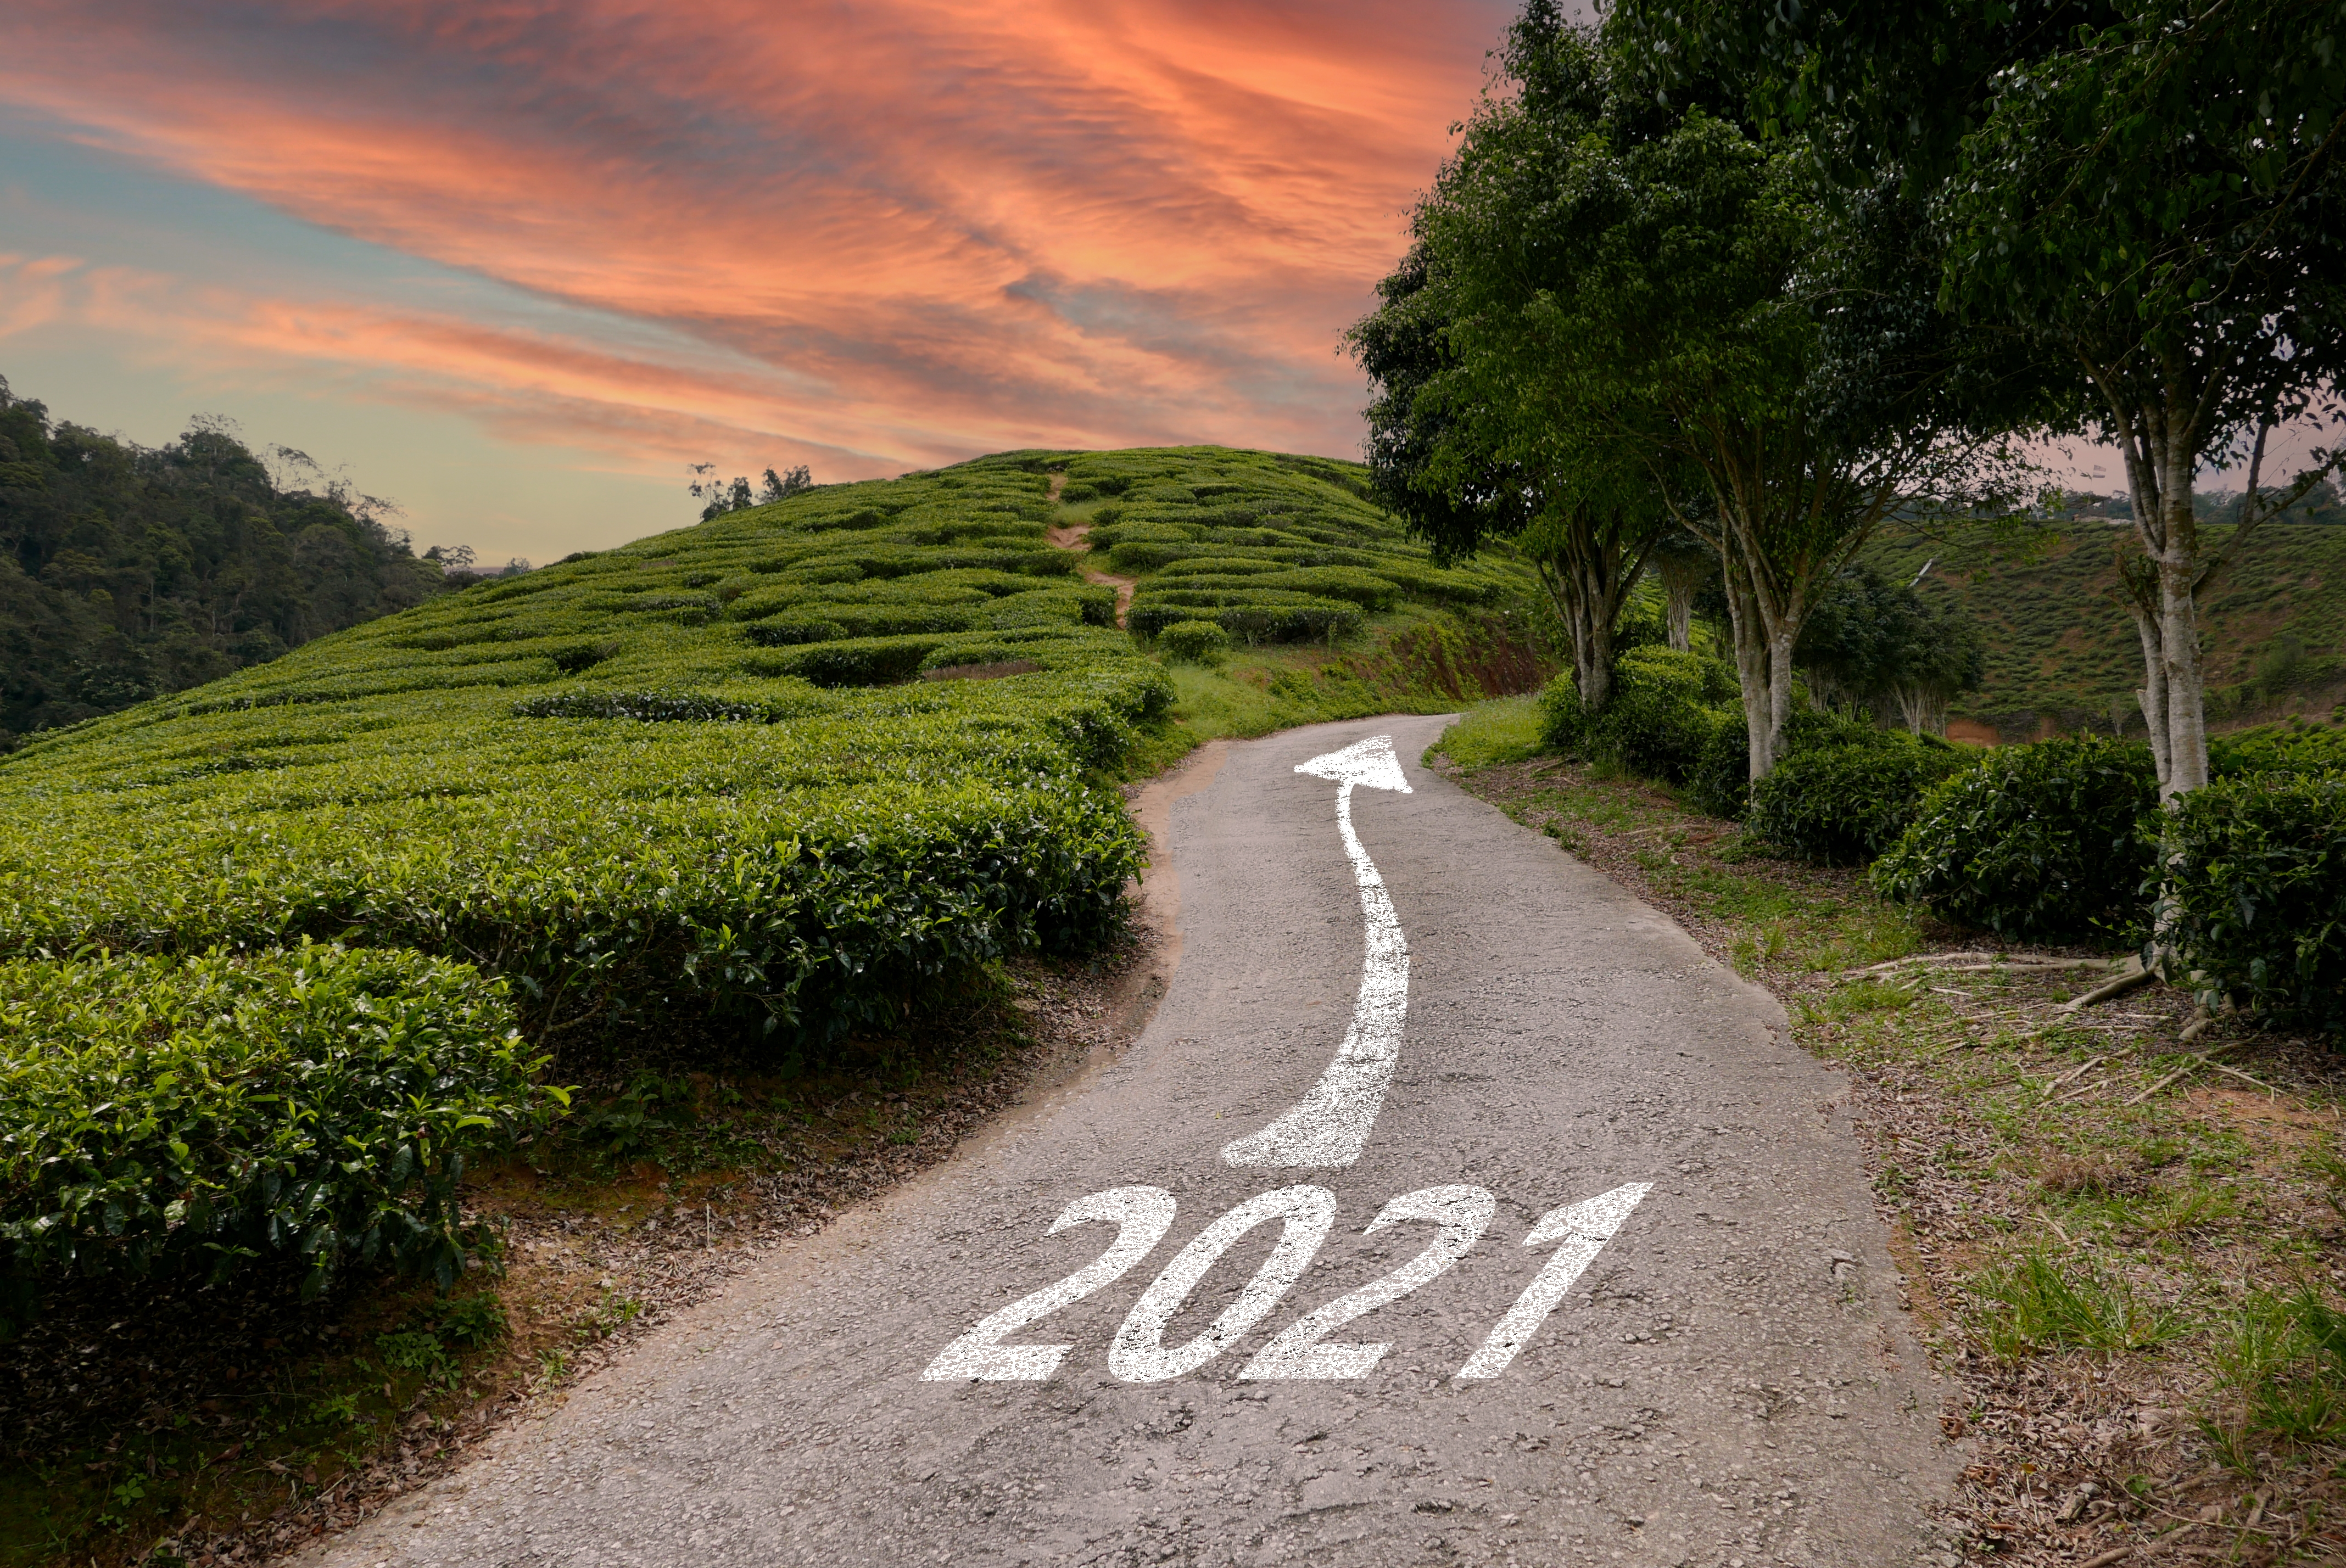 a-road-or-path-way-to-the-new-year-2021-surrounding-by-landscape-of-tea-plantation-during_t20_0XJgye